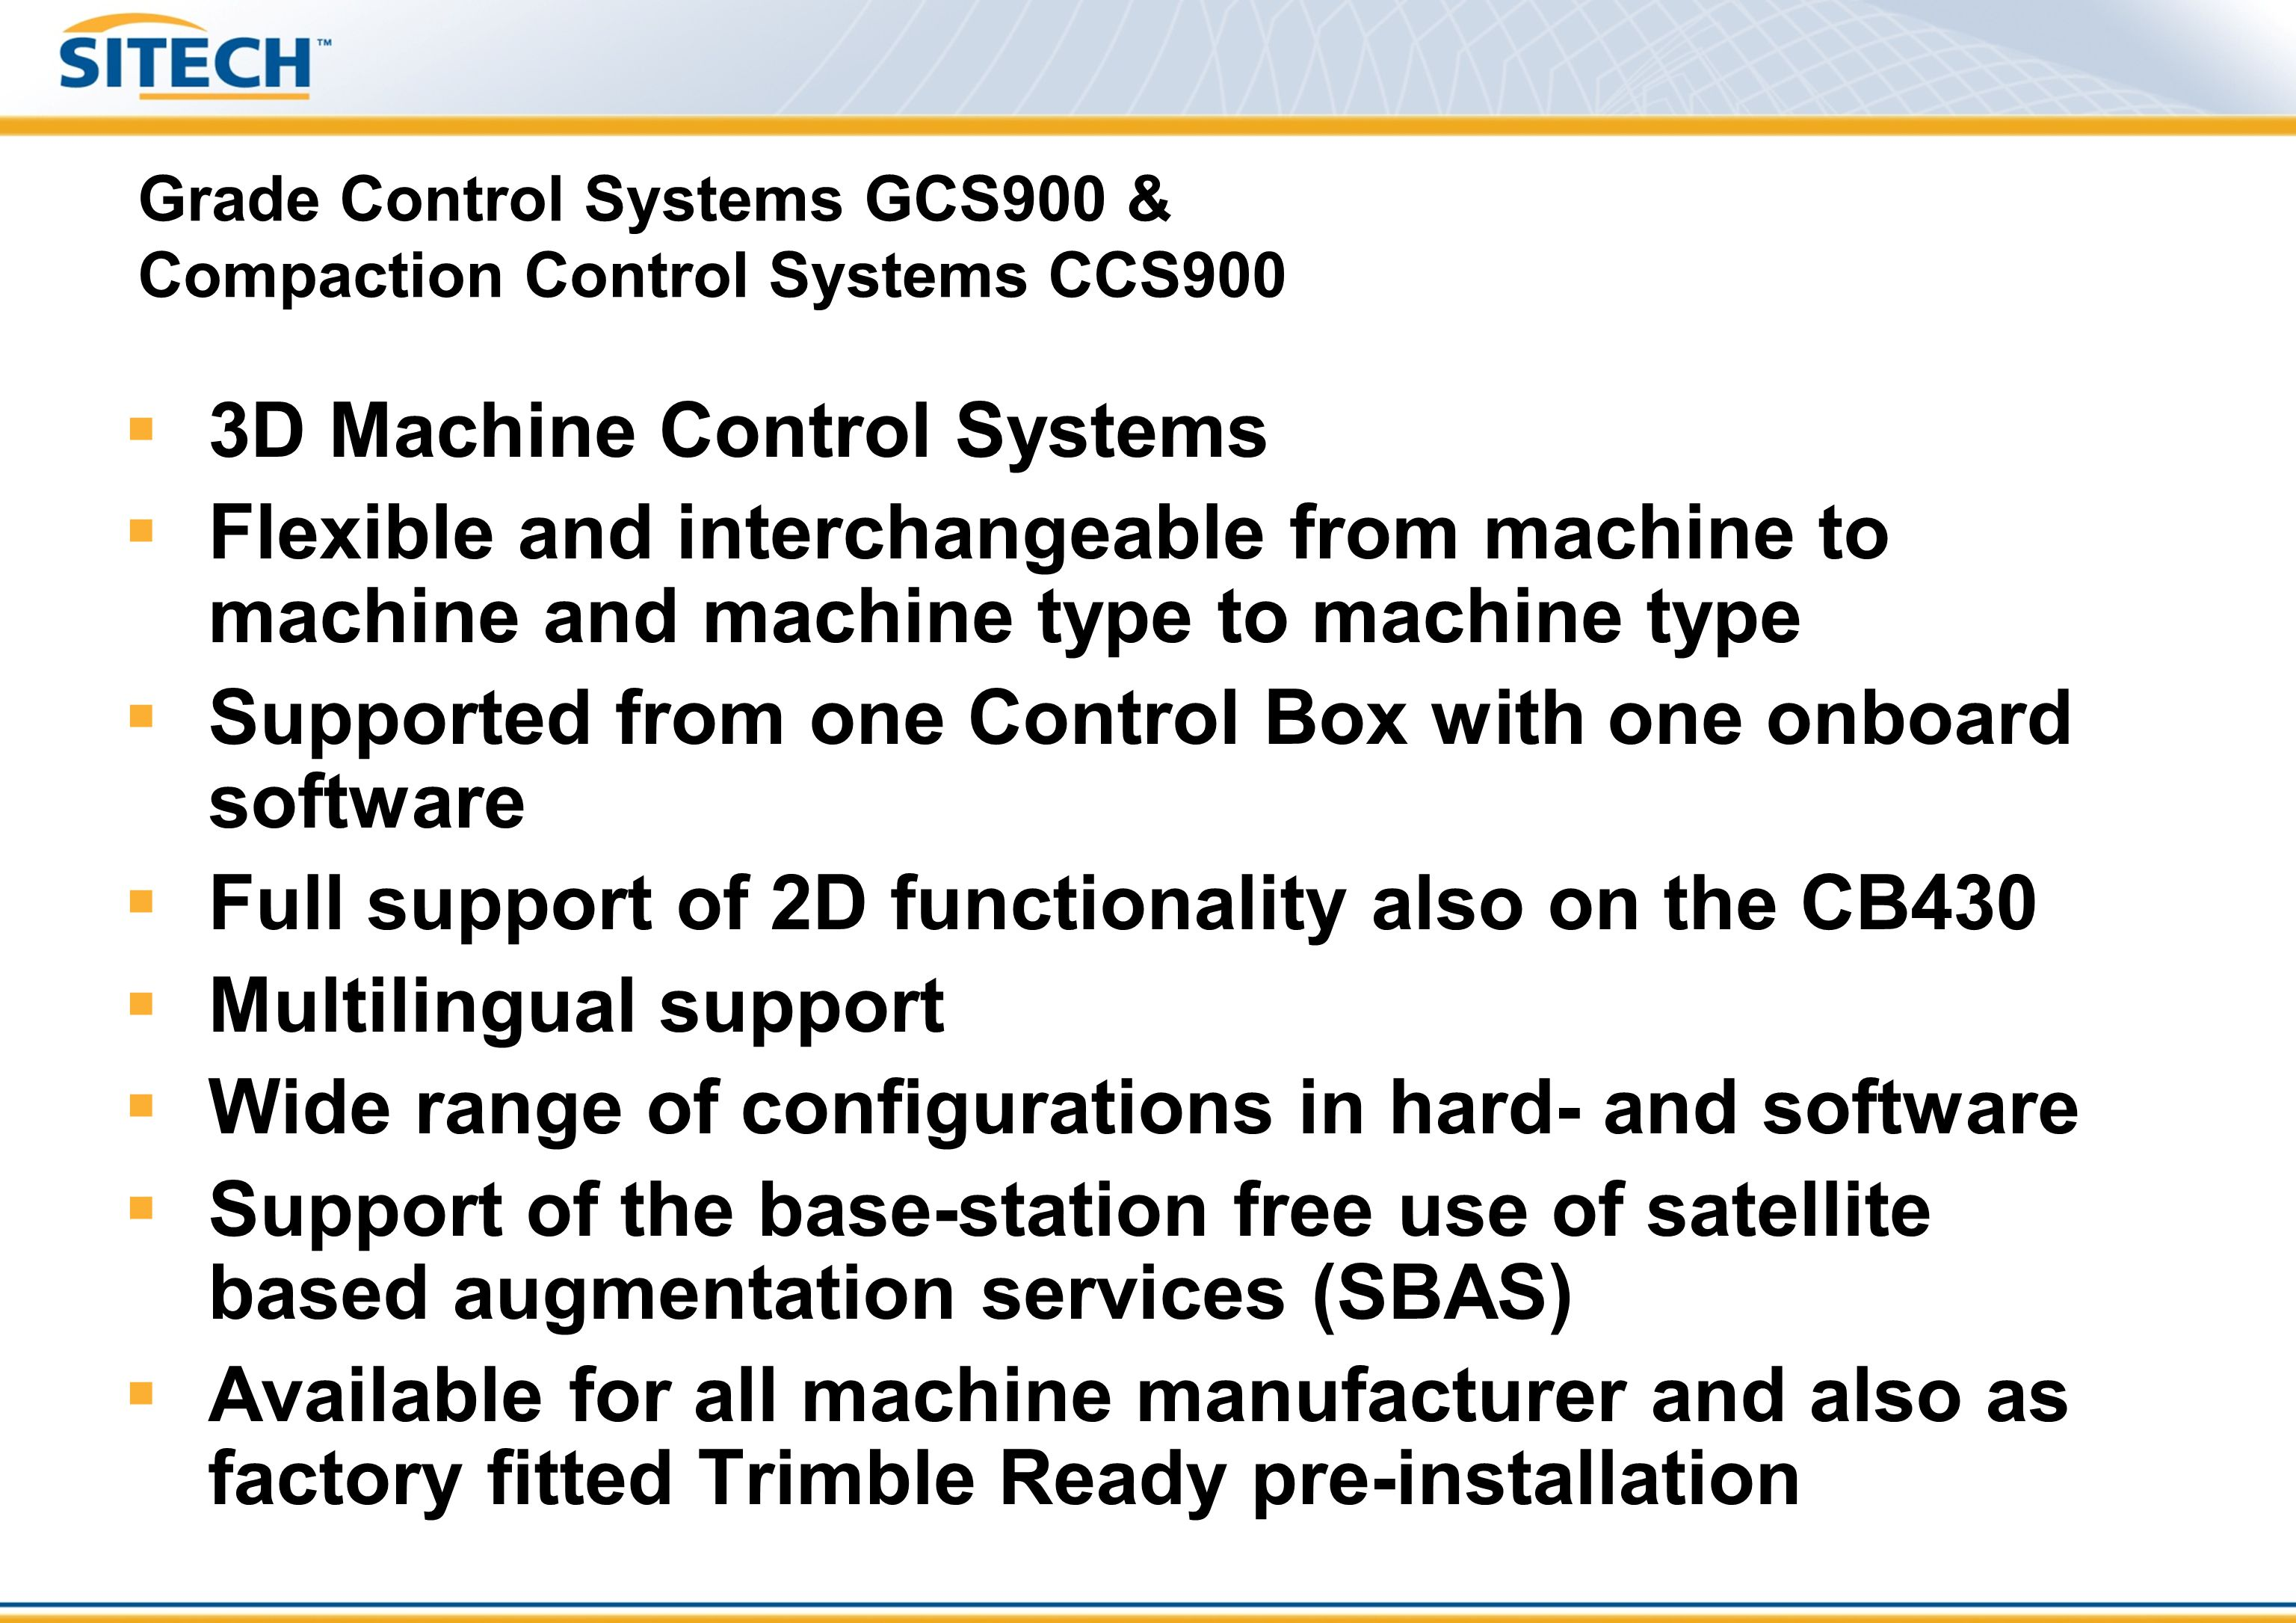 GCS900 – Grade Control System for Dozers  3D machine control system for dozers  Indicating or fully automatic controlled  Multiple configurations –Dual GPS/GLONASS antenna –Single GPS/GLONASS antenna & Cross Slope Sensor –GPS/GLONASS antenna plus Laser Augmentation –UTS Total Station –Laser Receiver –Blate Rotation (6-way-blade) and Blade Rolling (mast leaning) is supported  Provides fine grading accuracies –<2-3cm with GPS/GLONASS –<3-5mm with UTS